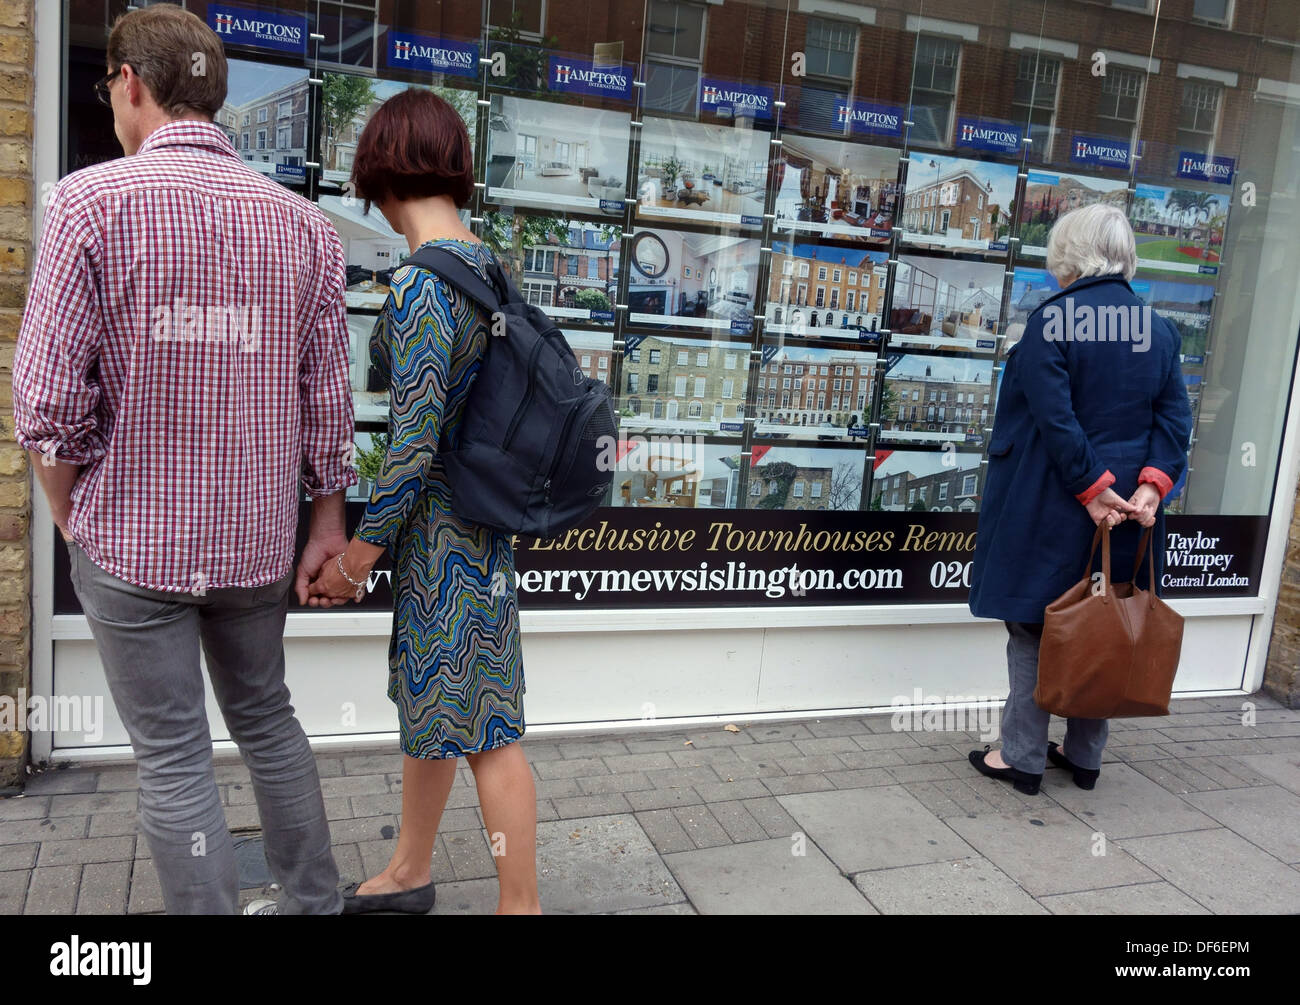 People looking at estate agents window display, London - Stock Image